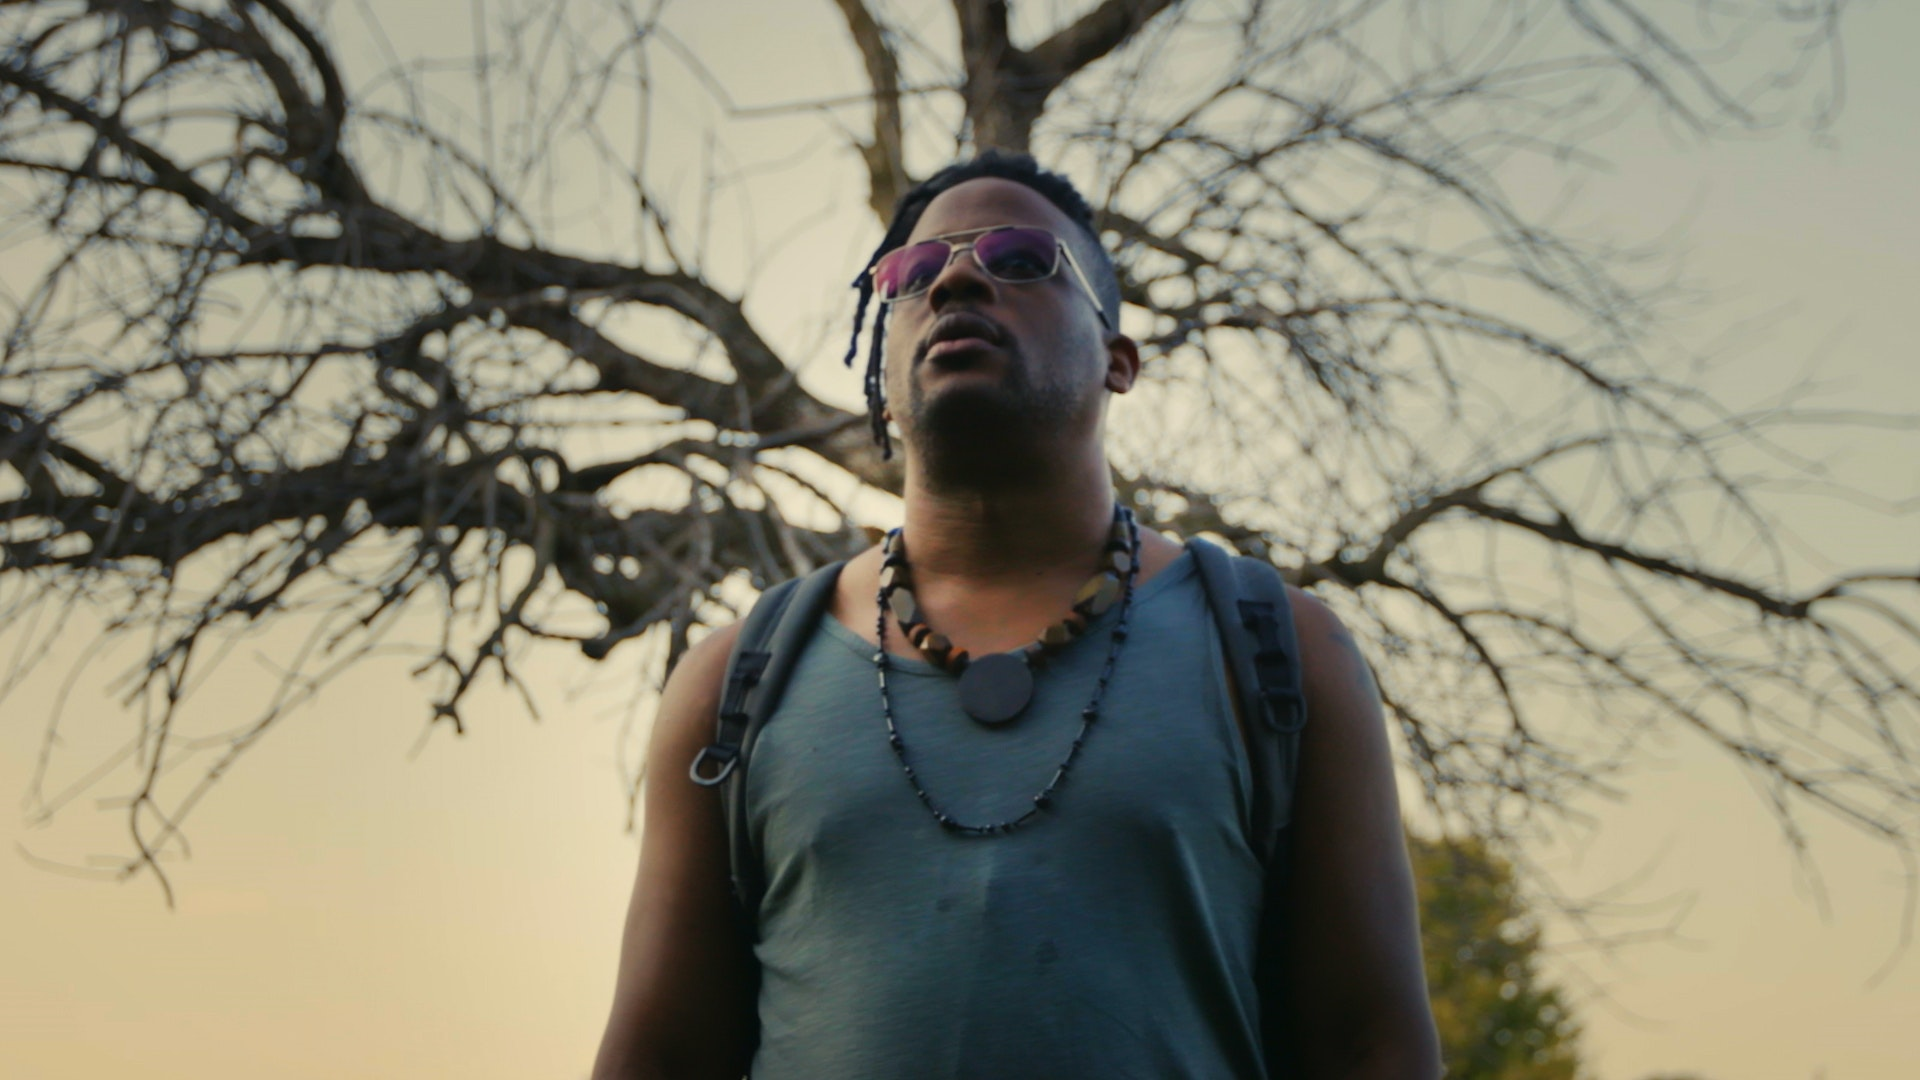 DAYDREAMING IN THE PROJECTS with Open Mike Eagle